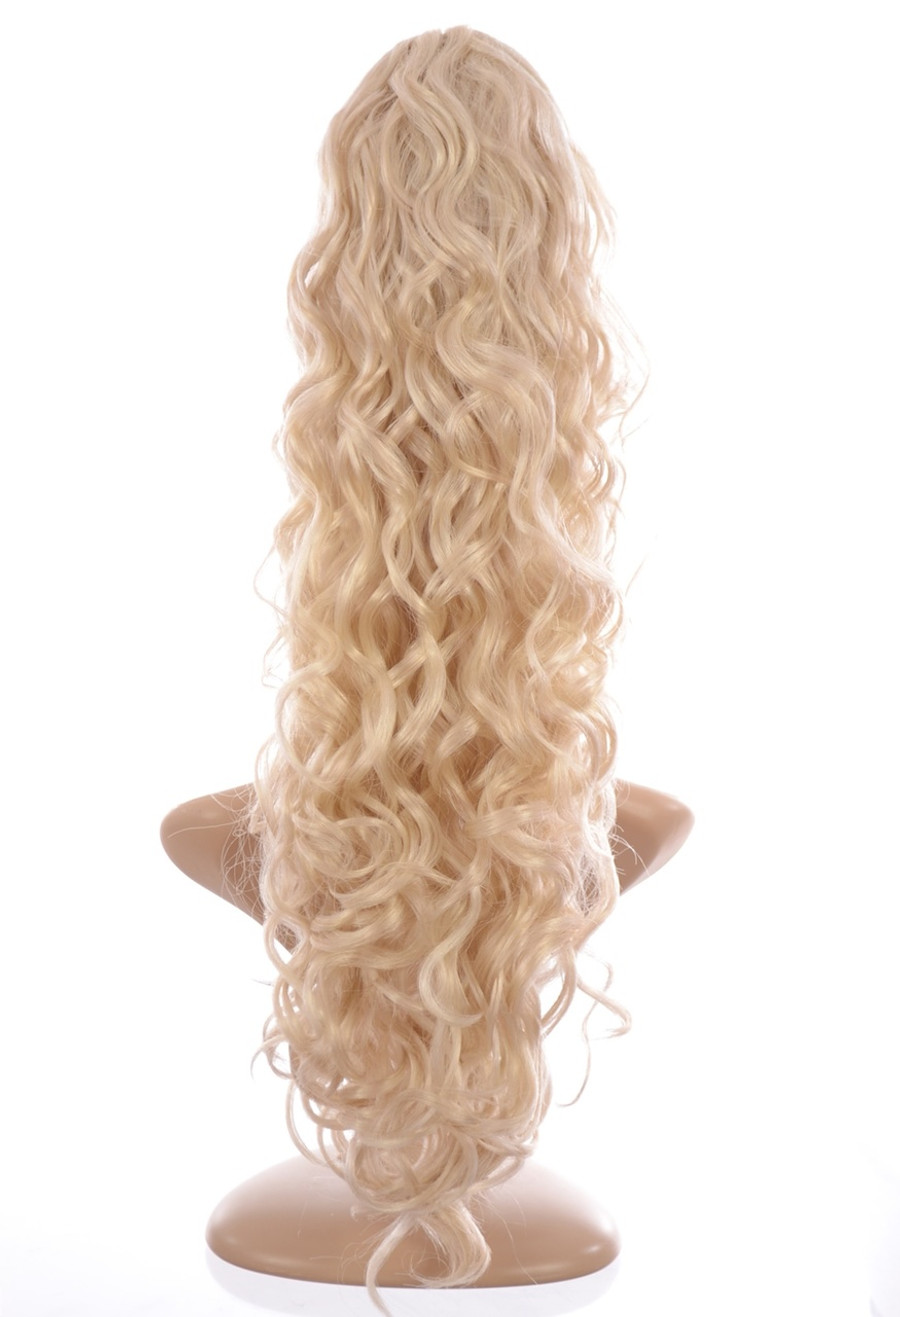 Claw Grip Ringlet Curly Hair Piece Ponytail Clip: Platinum Blonde